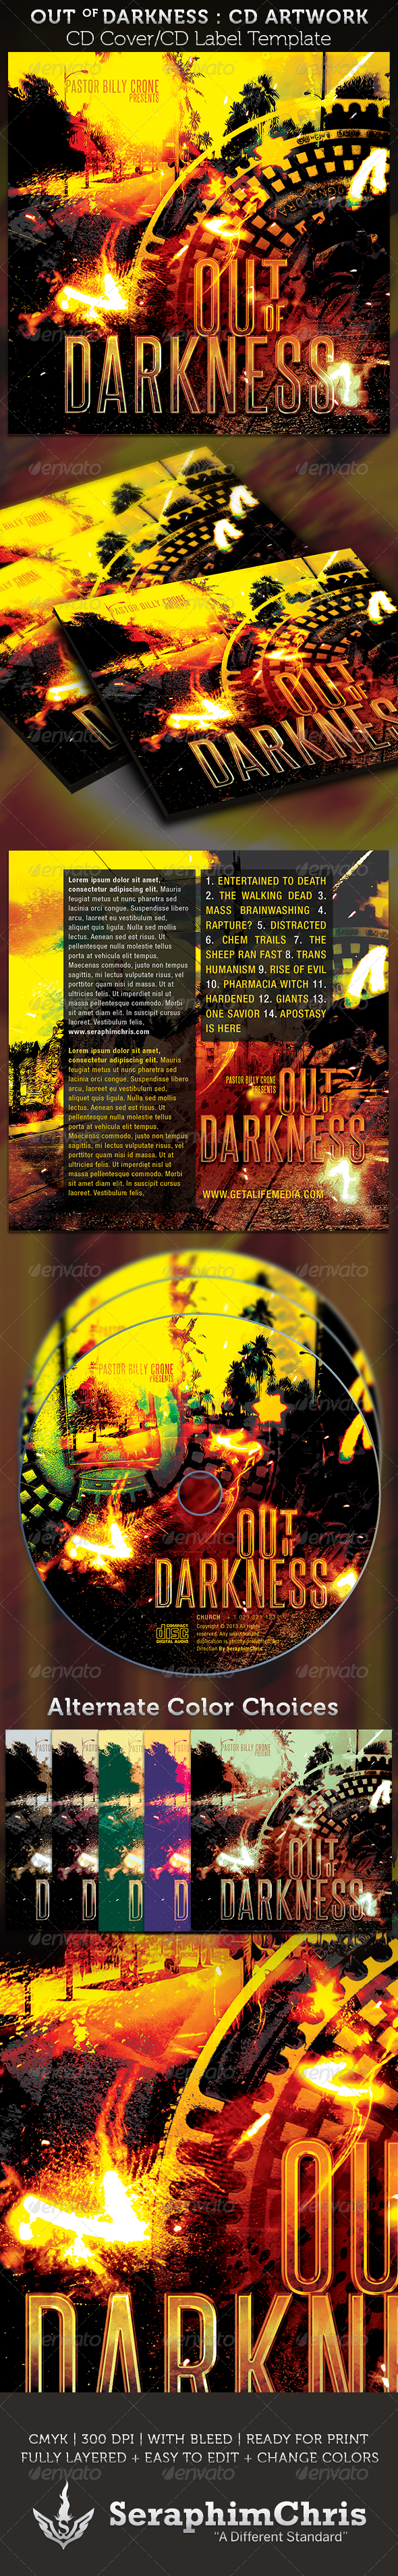 Out of Darkness CD Cover Artowork Template - CD & DVD Artwork Print Templates